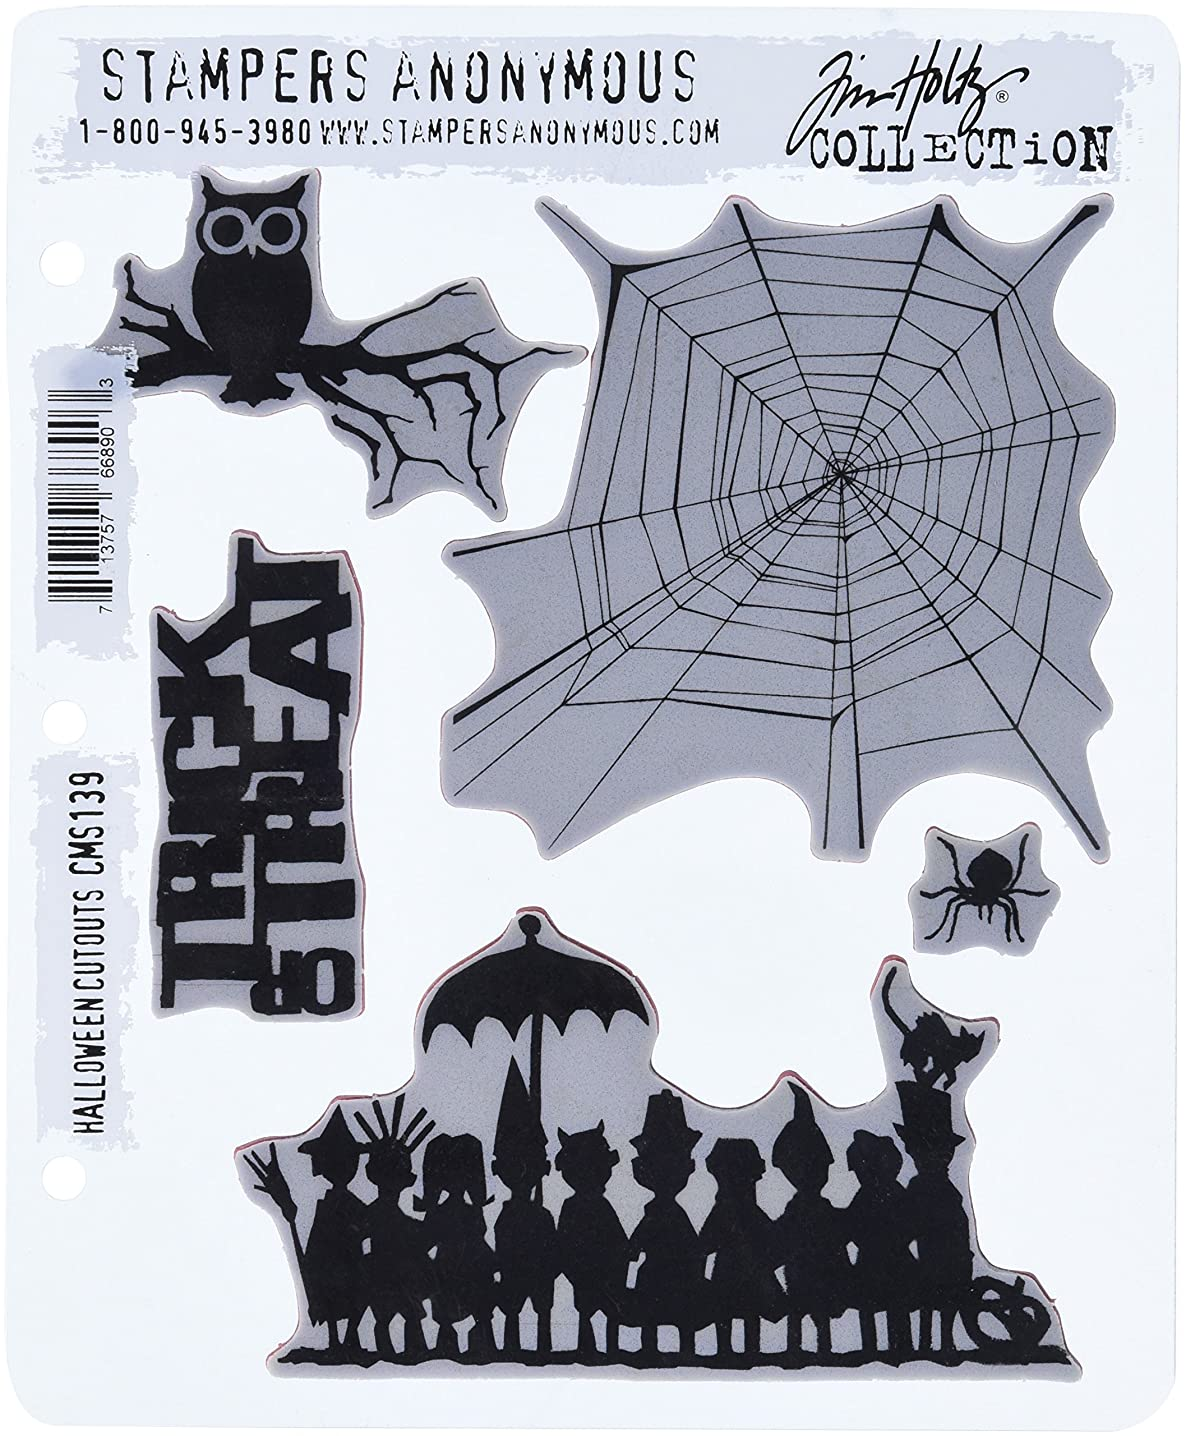 Stampers Anonymous Tim Holtz Cling Rubber Stamp Set, 7 by 8.5-Inch, Halloween Cutouts